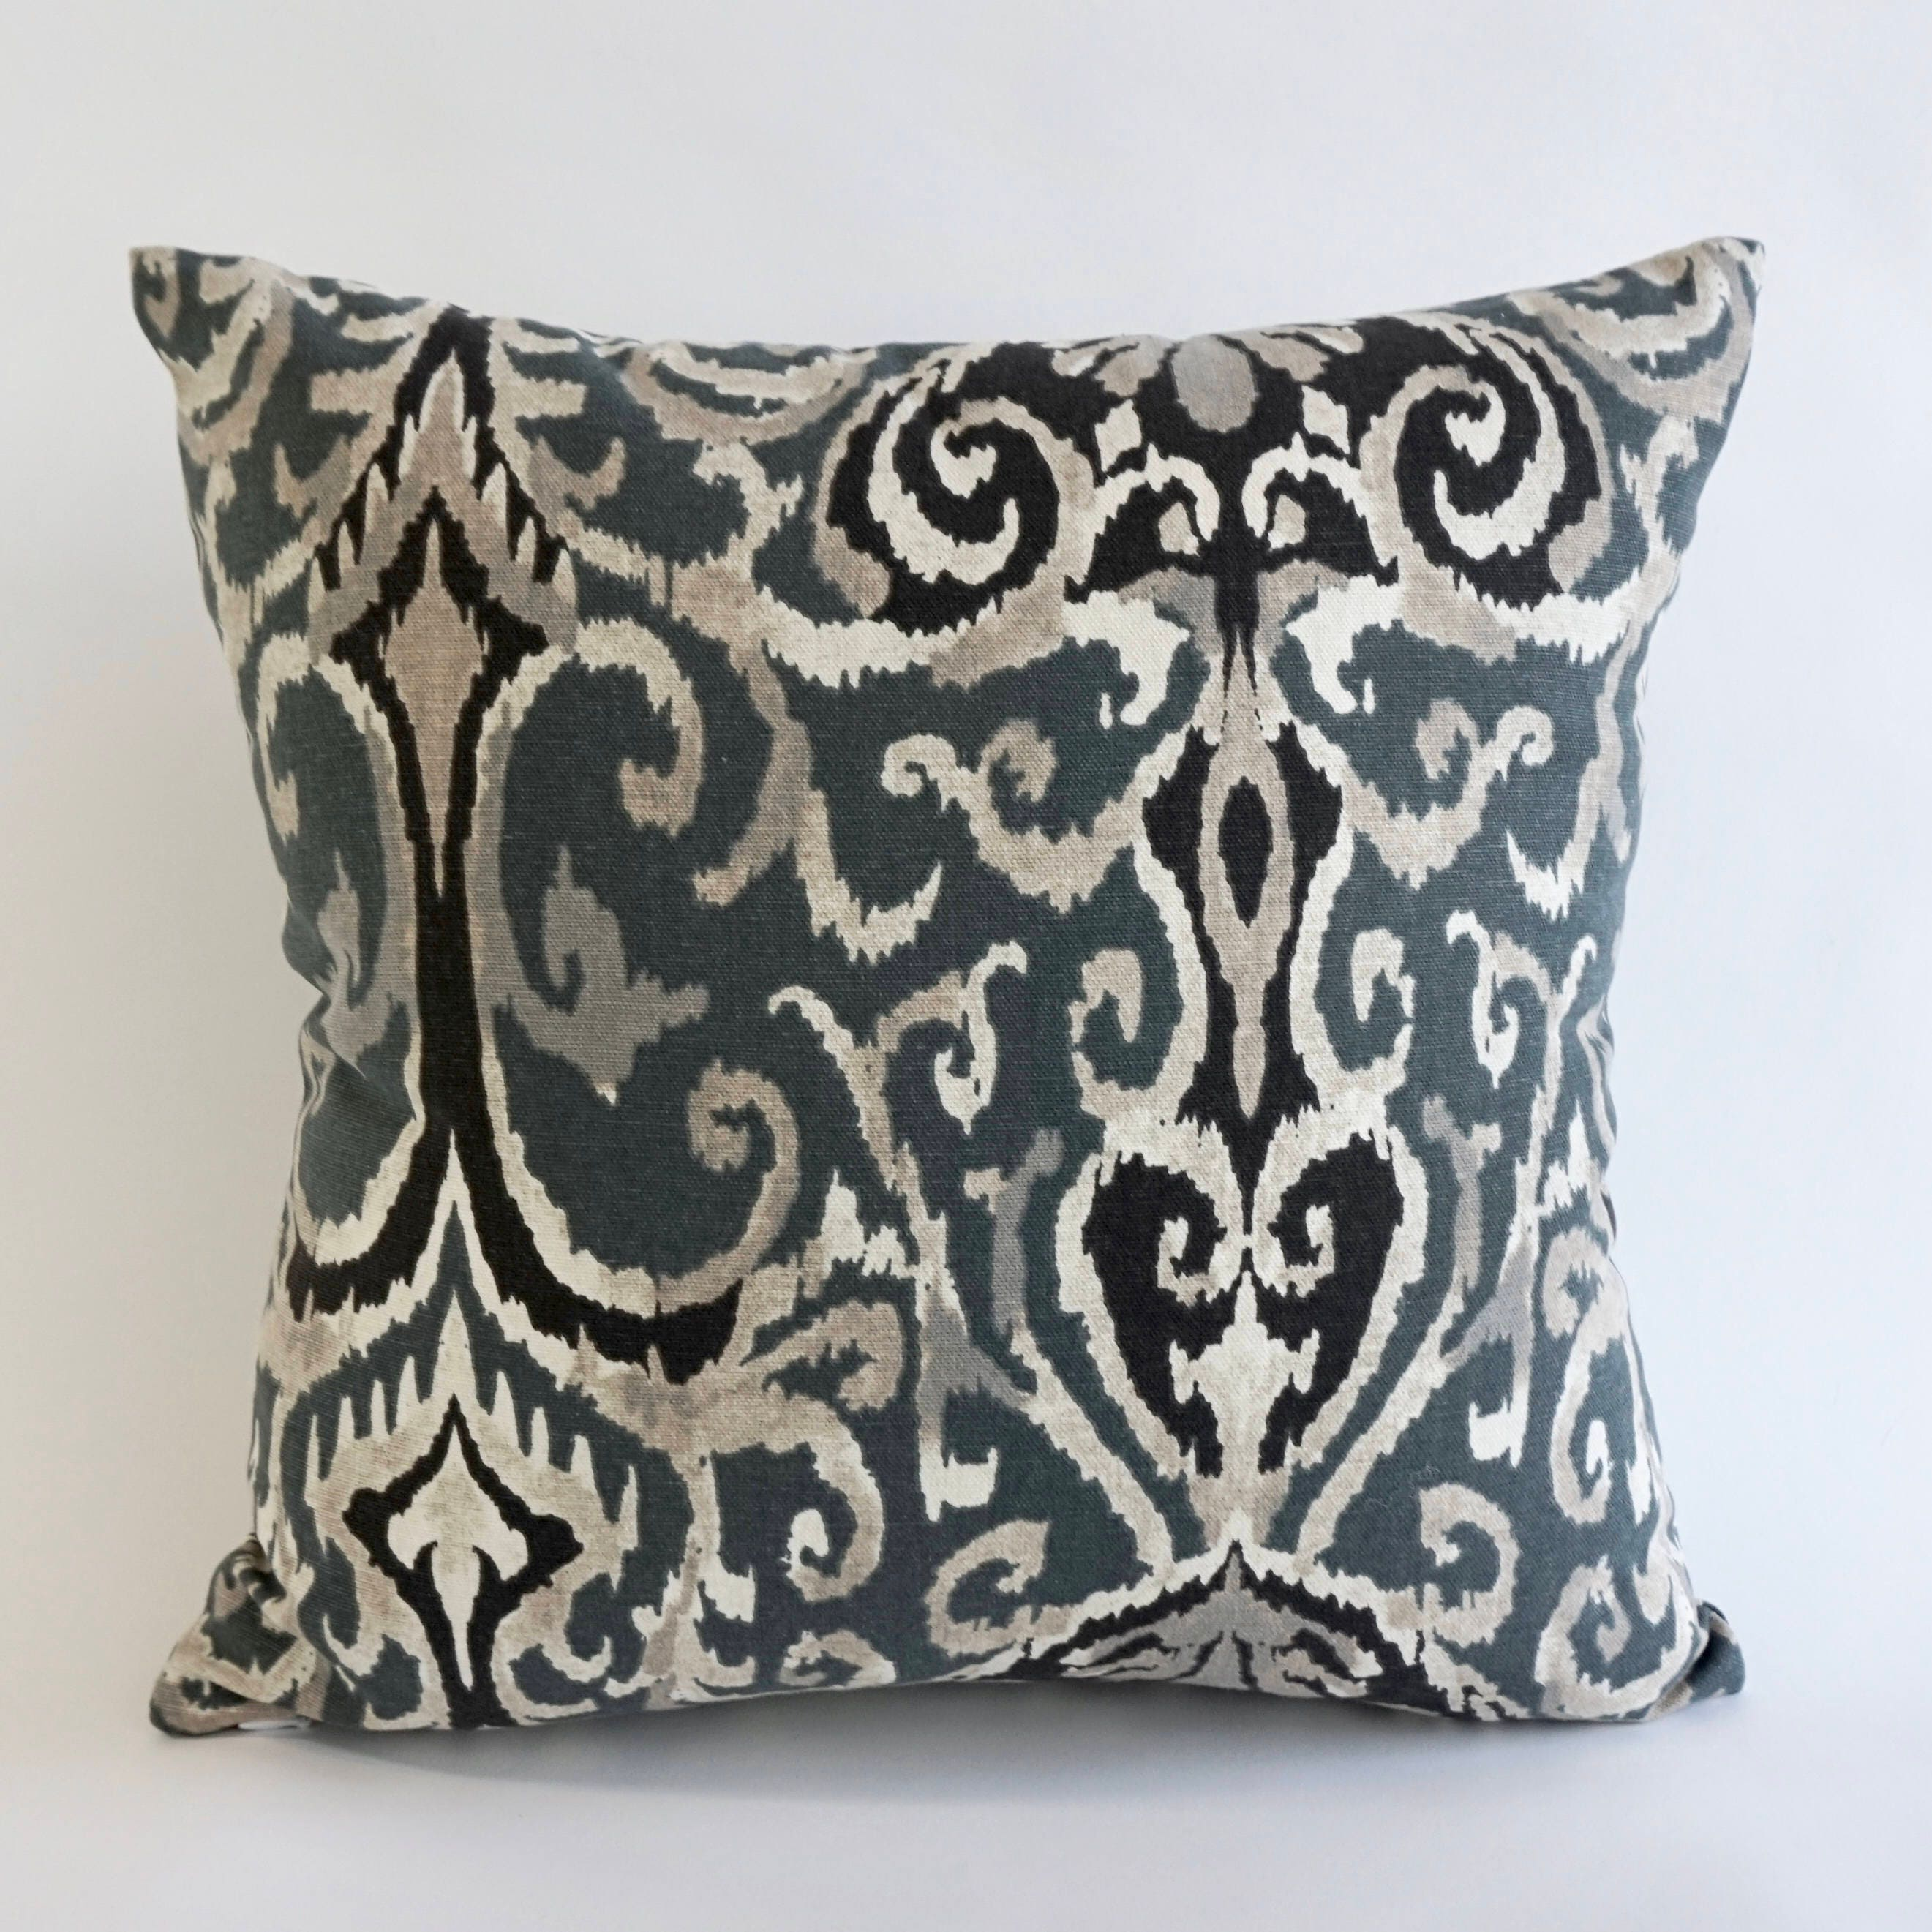 Poster Weights Etsy: Decorative Throw Pillow Ikat Print On Medium Weight Cotton